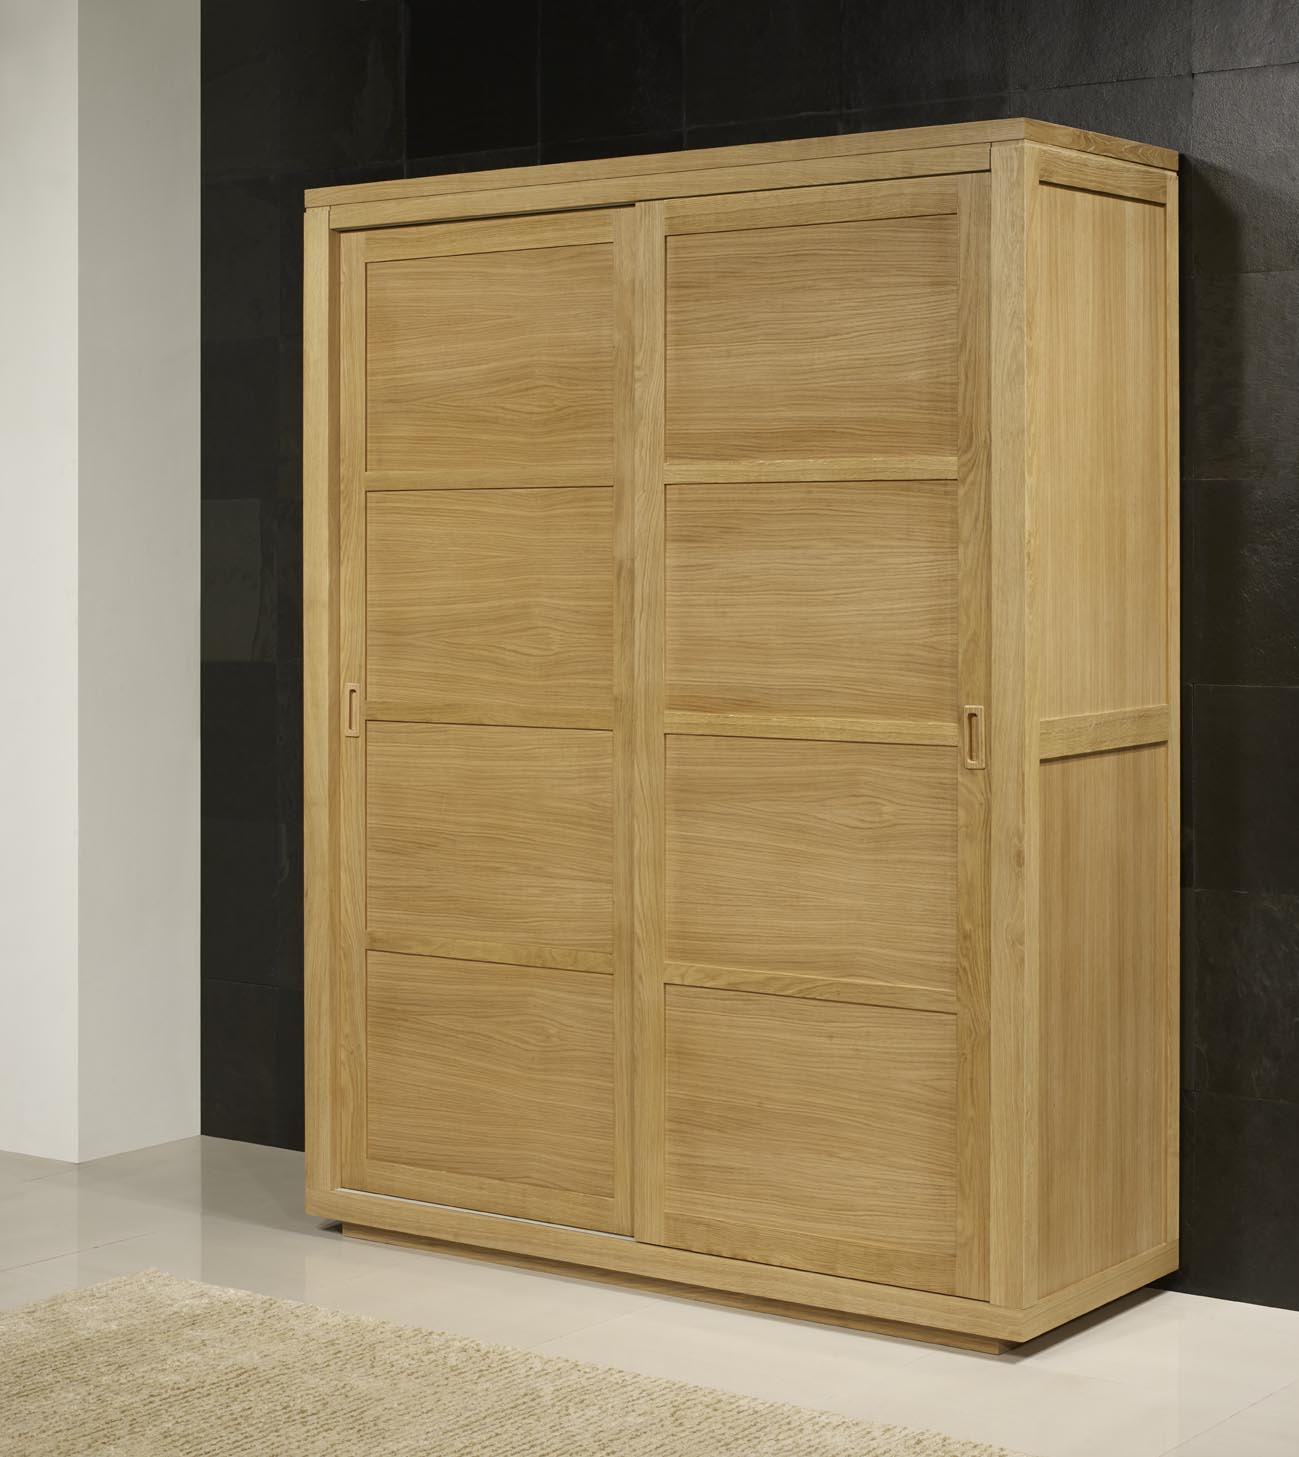 armoire 2 portes coulissantes julien en ch ne de ligne contemporaine meuble en ch ne massif. Black Bedroom Furniture Sets. Home Design Ideas